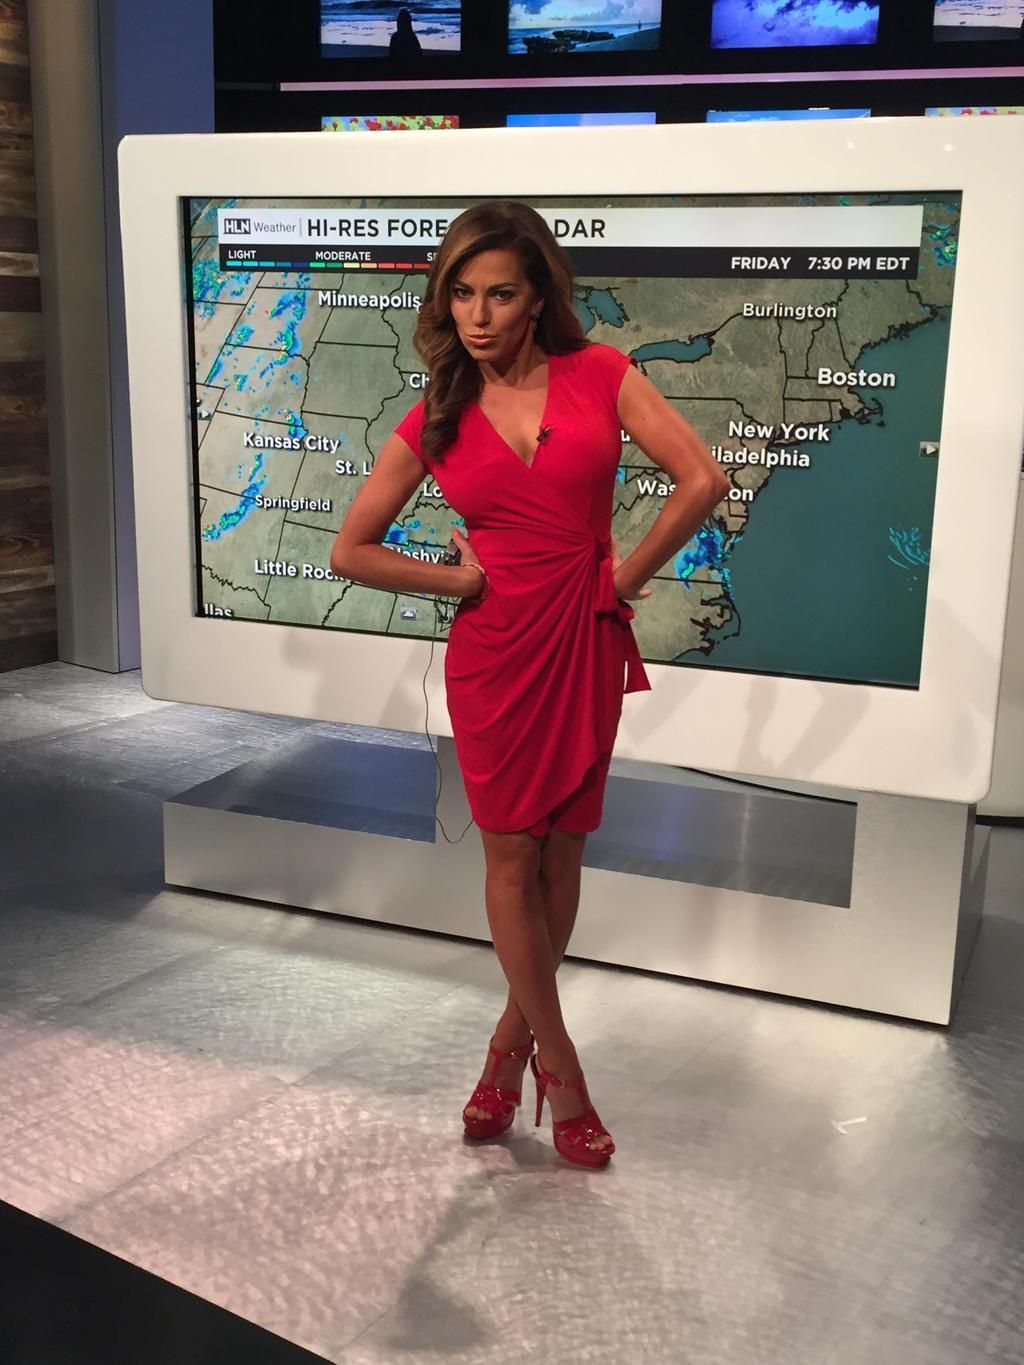 Univision weather ladie upskirt